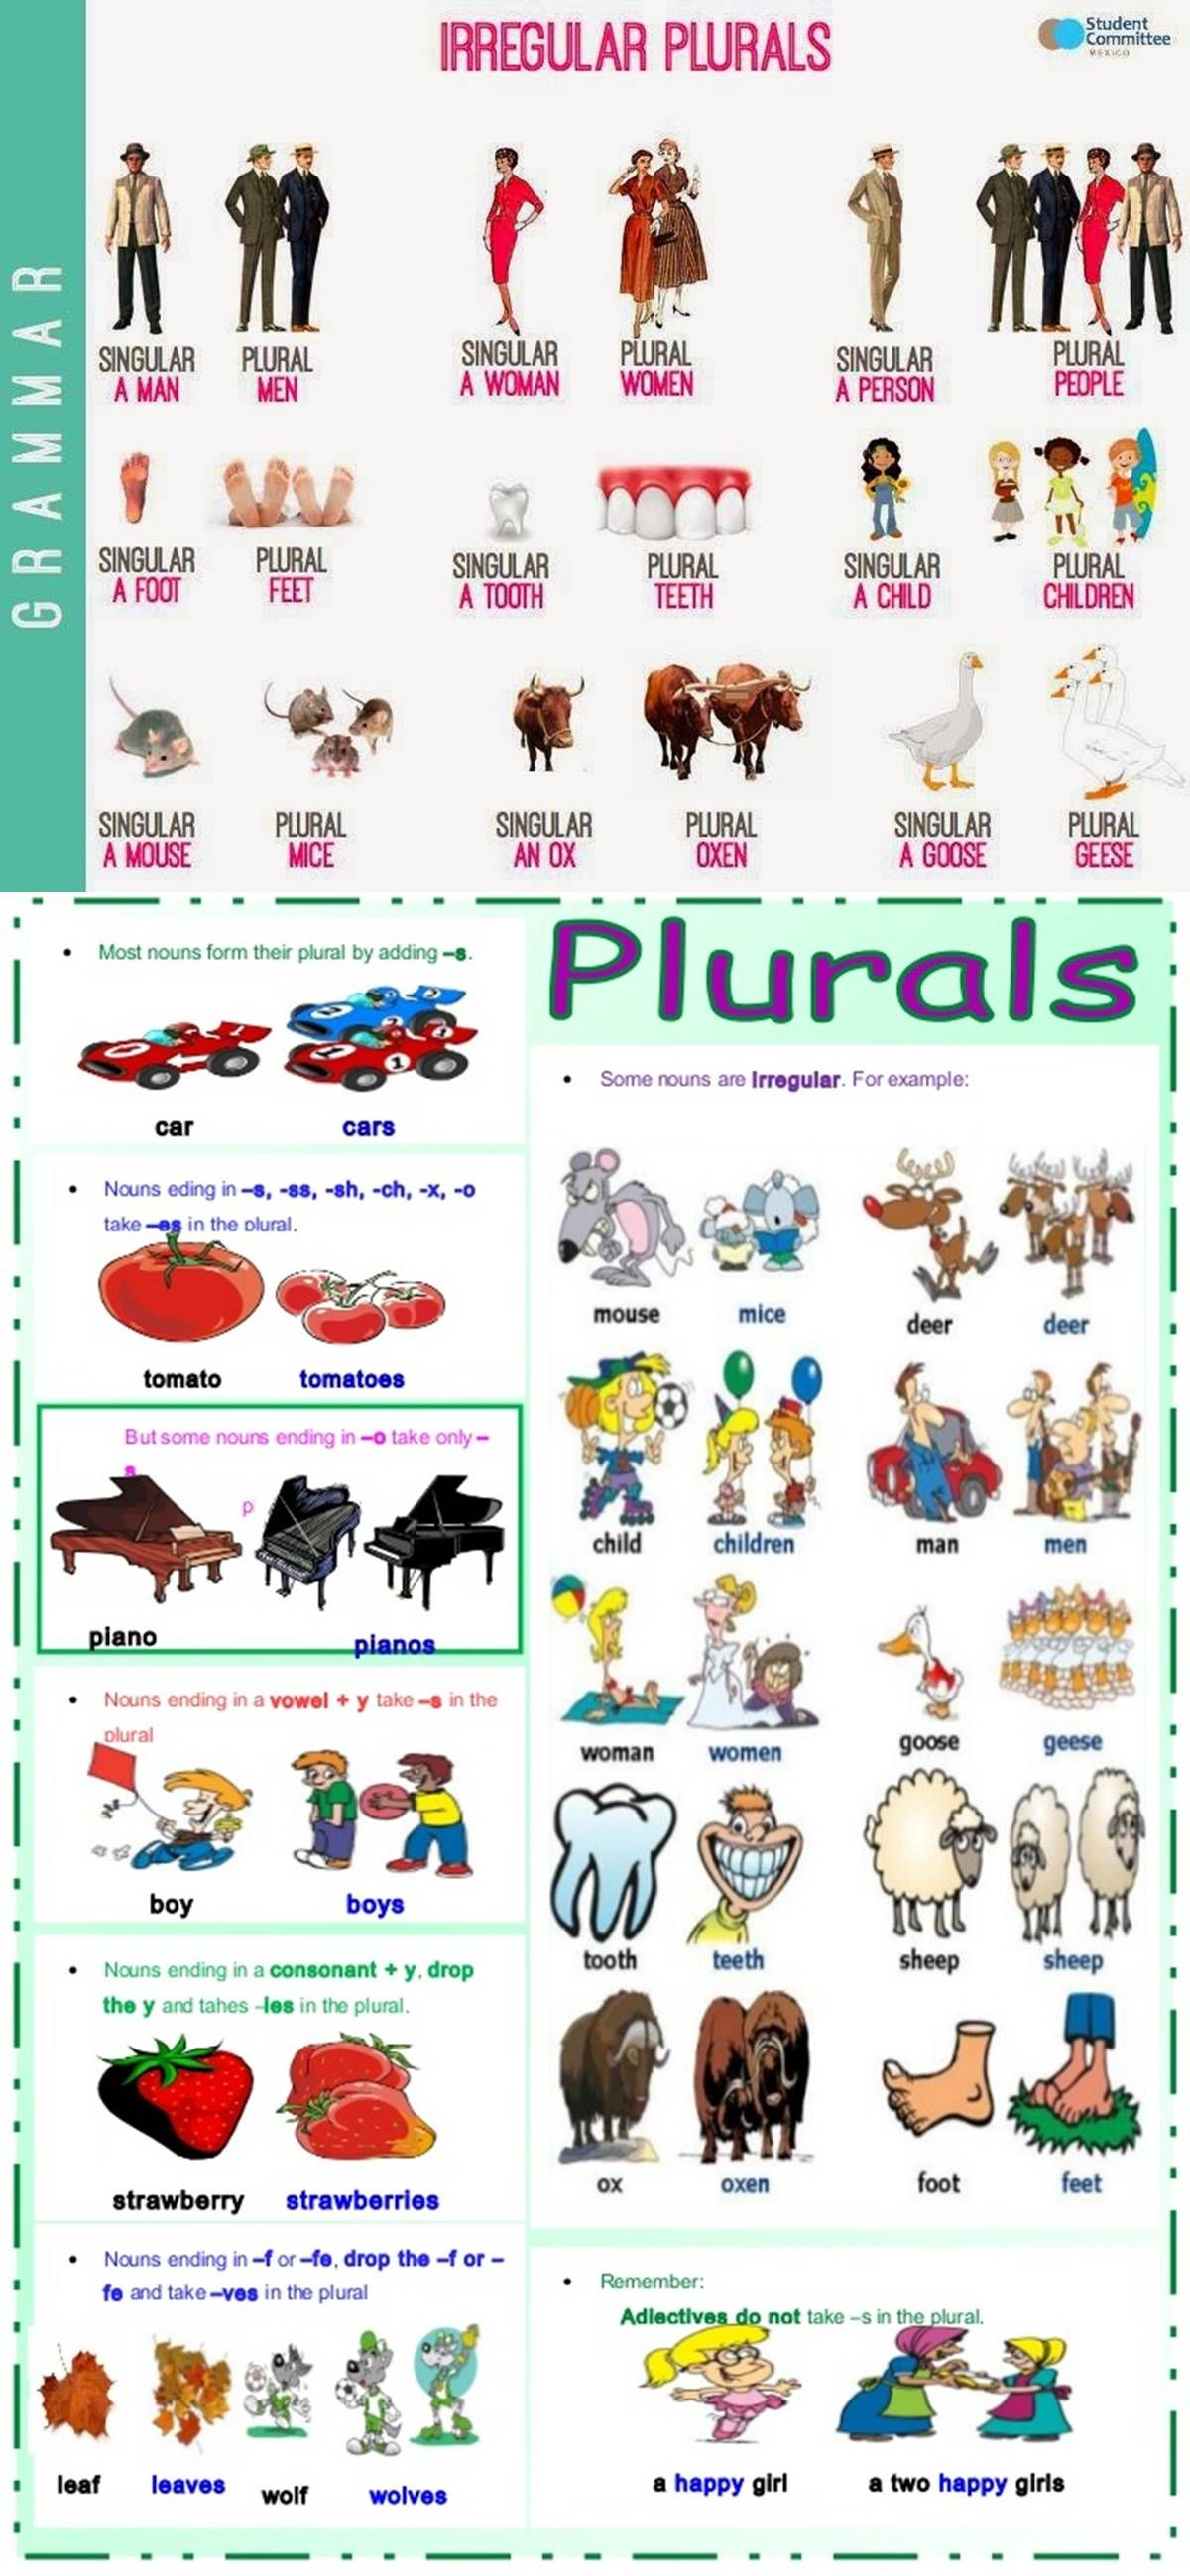 Forum Fluent Landa List Of The Most Common Irregular Plural Nouns In English Fluent Land Aprender Inglés Secundaria